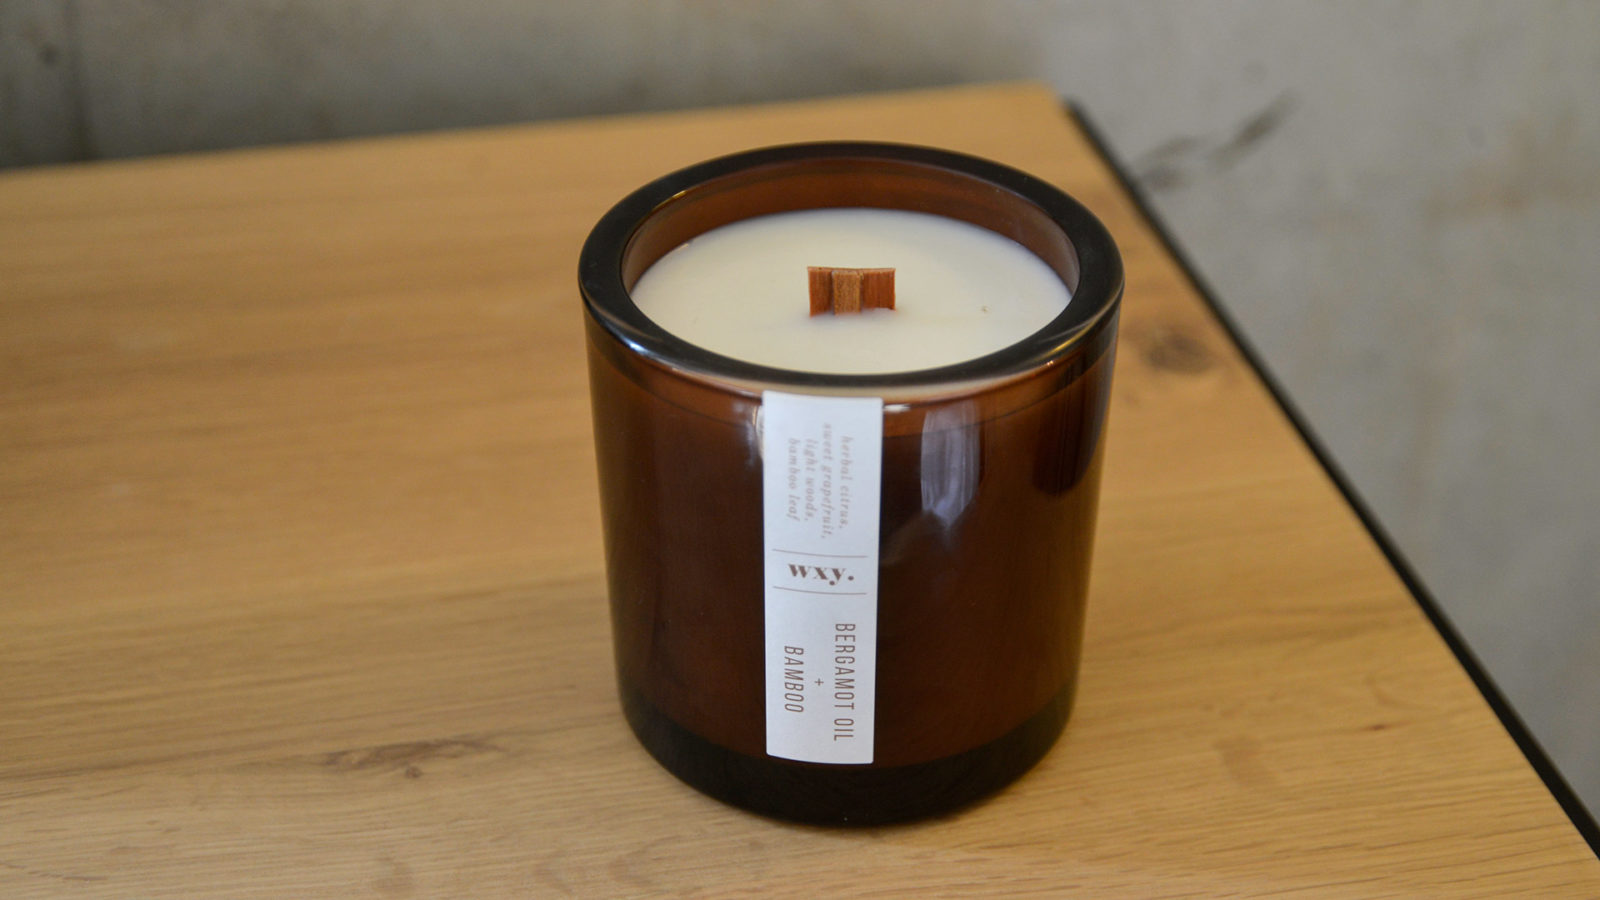 bergamot-oil-and-bamboo-candle wood-wick candle